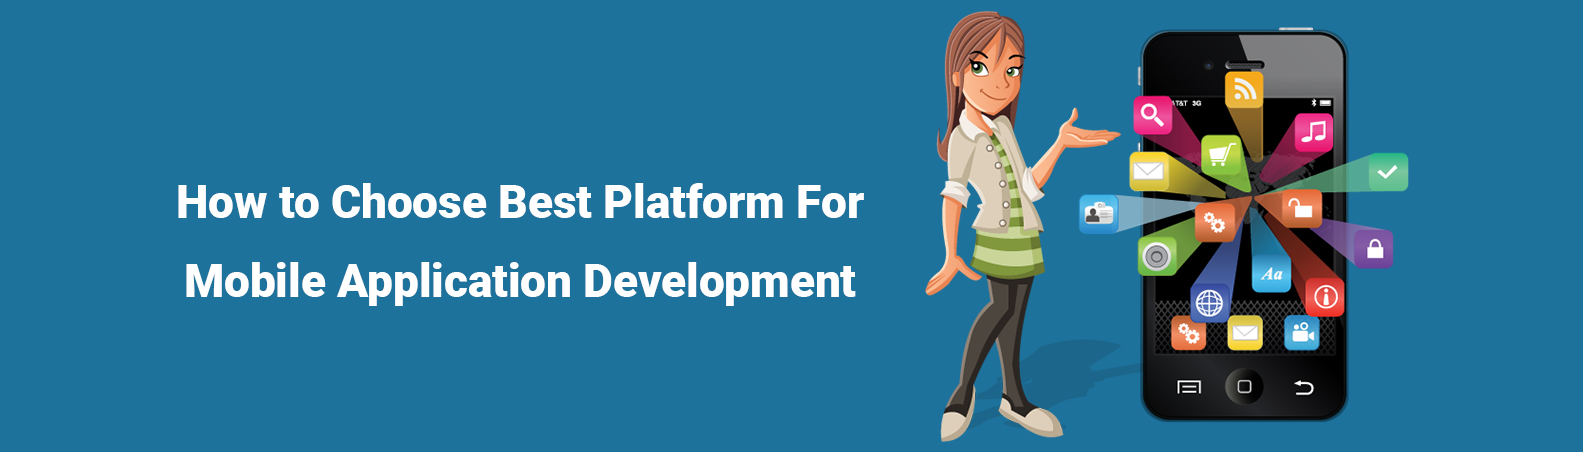 How to Choose Best Platform For Mobile Application Development